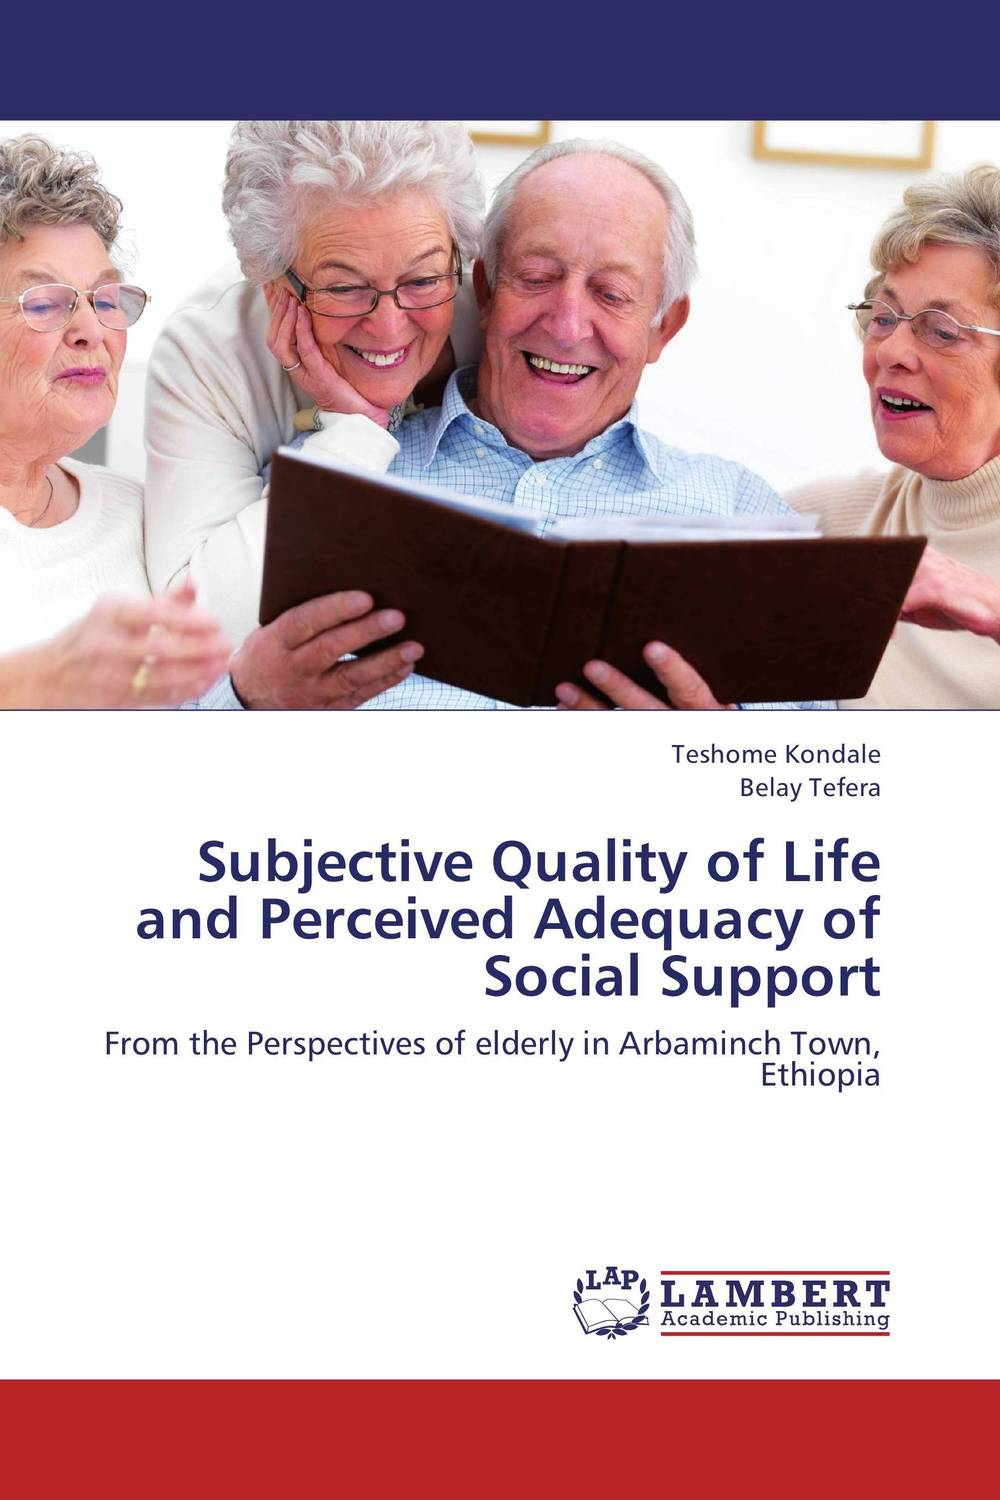 Subjective Quality of Life and Perceived Adequacy of Social Support a van soest explaining subjective well being the role of victimization trust health and social norms